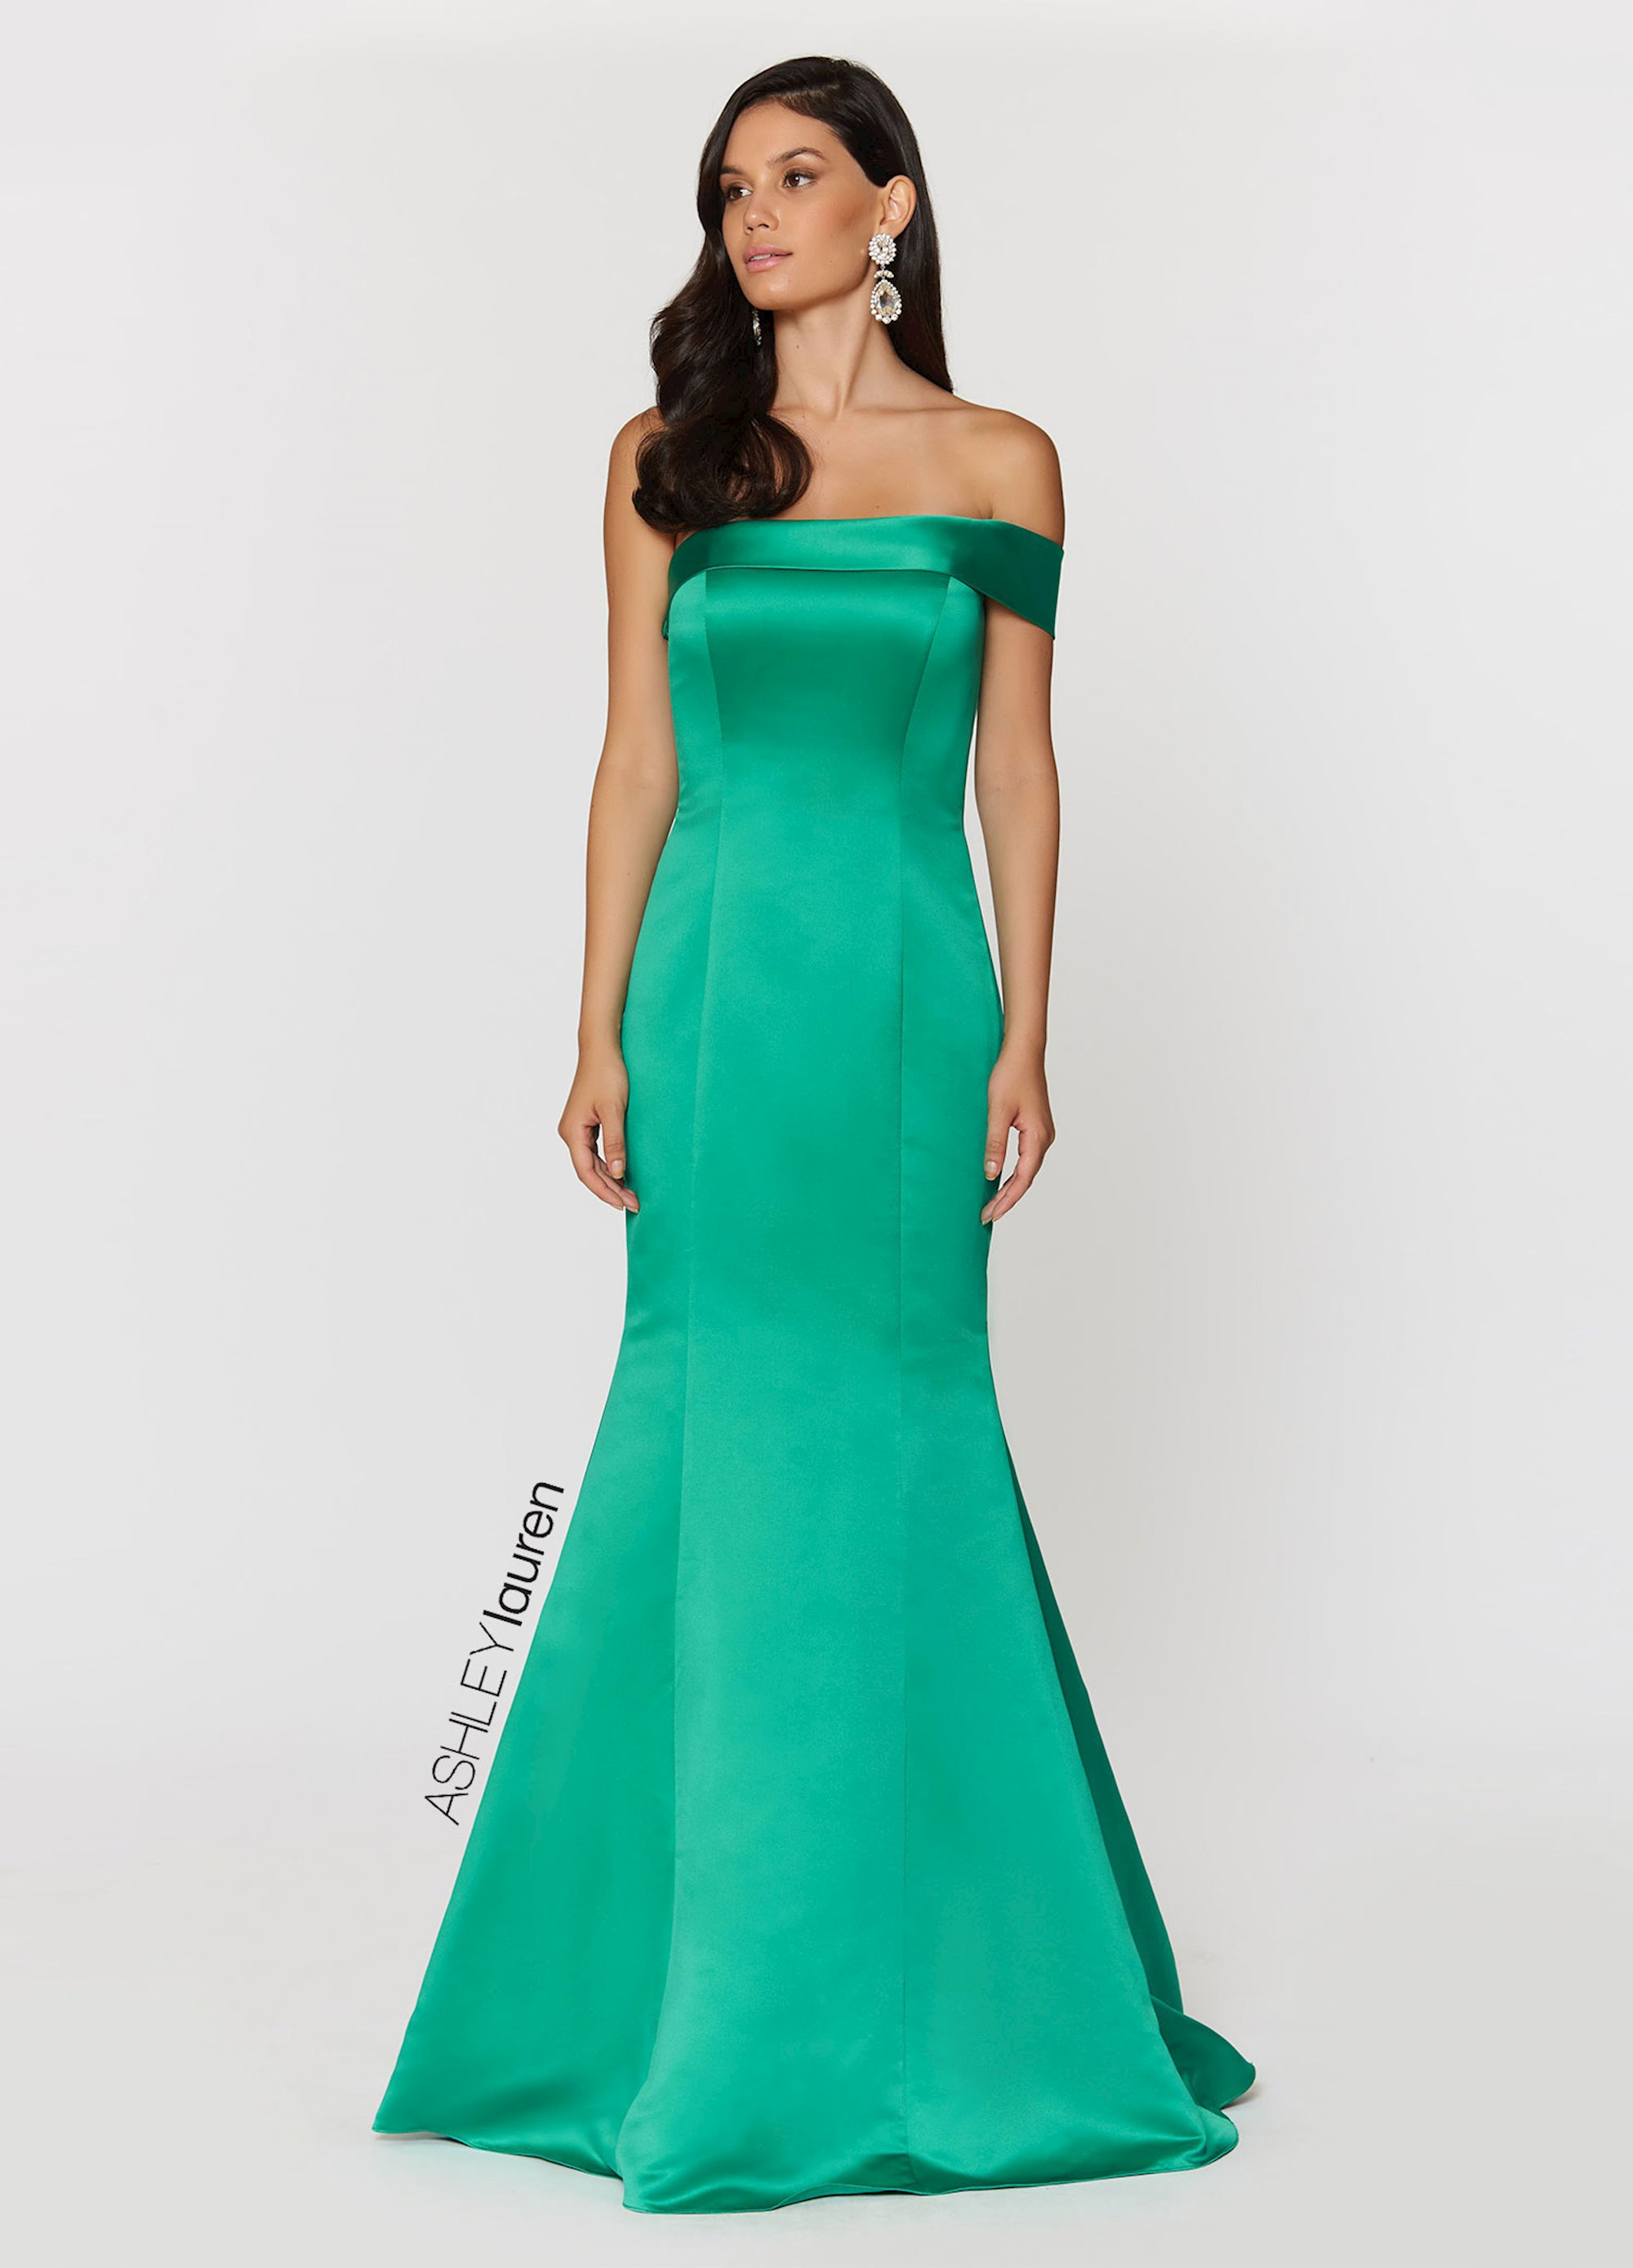 62f4306faae ... Shoulder Satin Evening Dress. Double tap to zoom